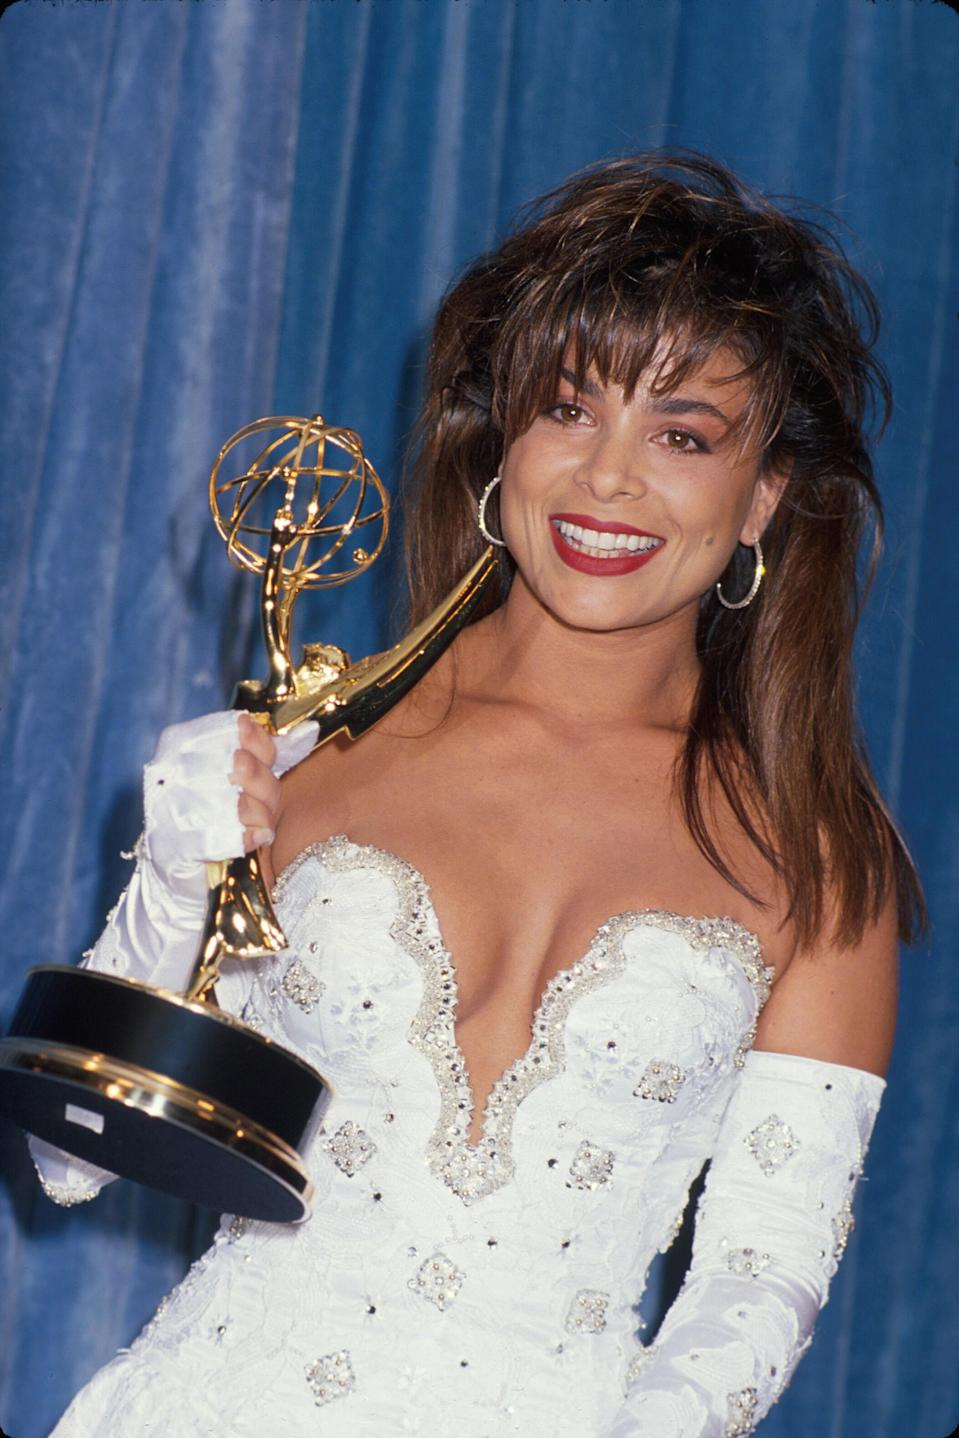 Paula Abdul winning an Emmy for her choreography. (Photo: Time Life Pictures/DMI/The LIFE Picture Collection/Getty Images)